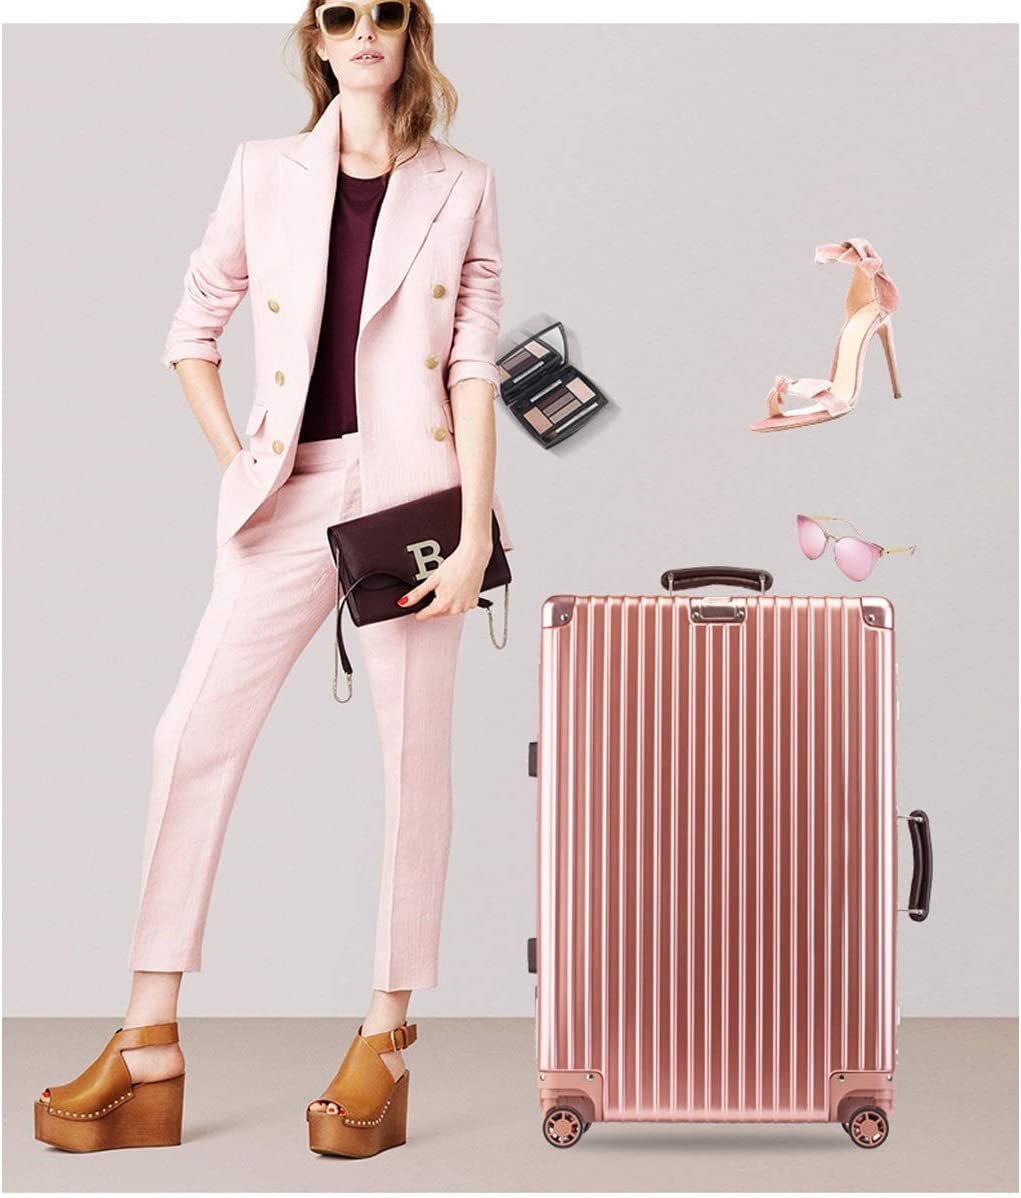 Xinqing Retro Suitcase Female 20 Inch Caster Aluminum Frame Password Box Right Angle Trolley Case Business Suitcase Male Color White Black Blue Size 52.53623cm Best Choice Product Color : Black